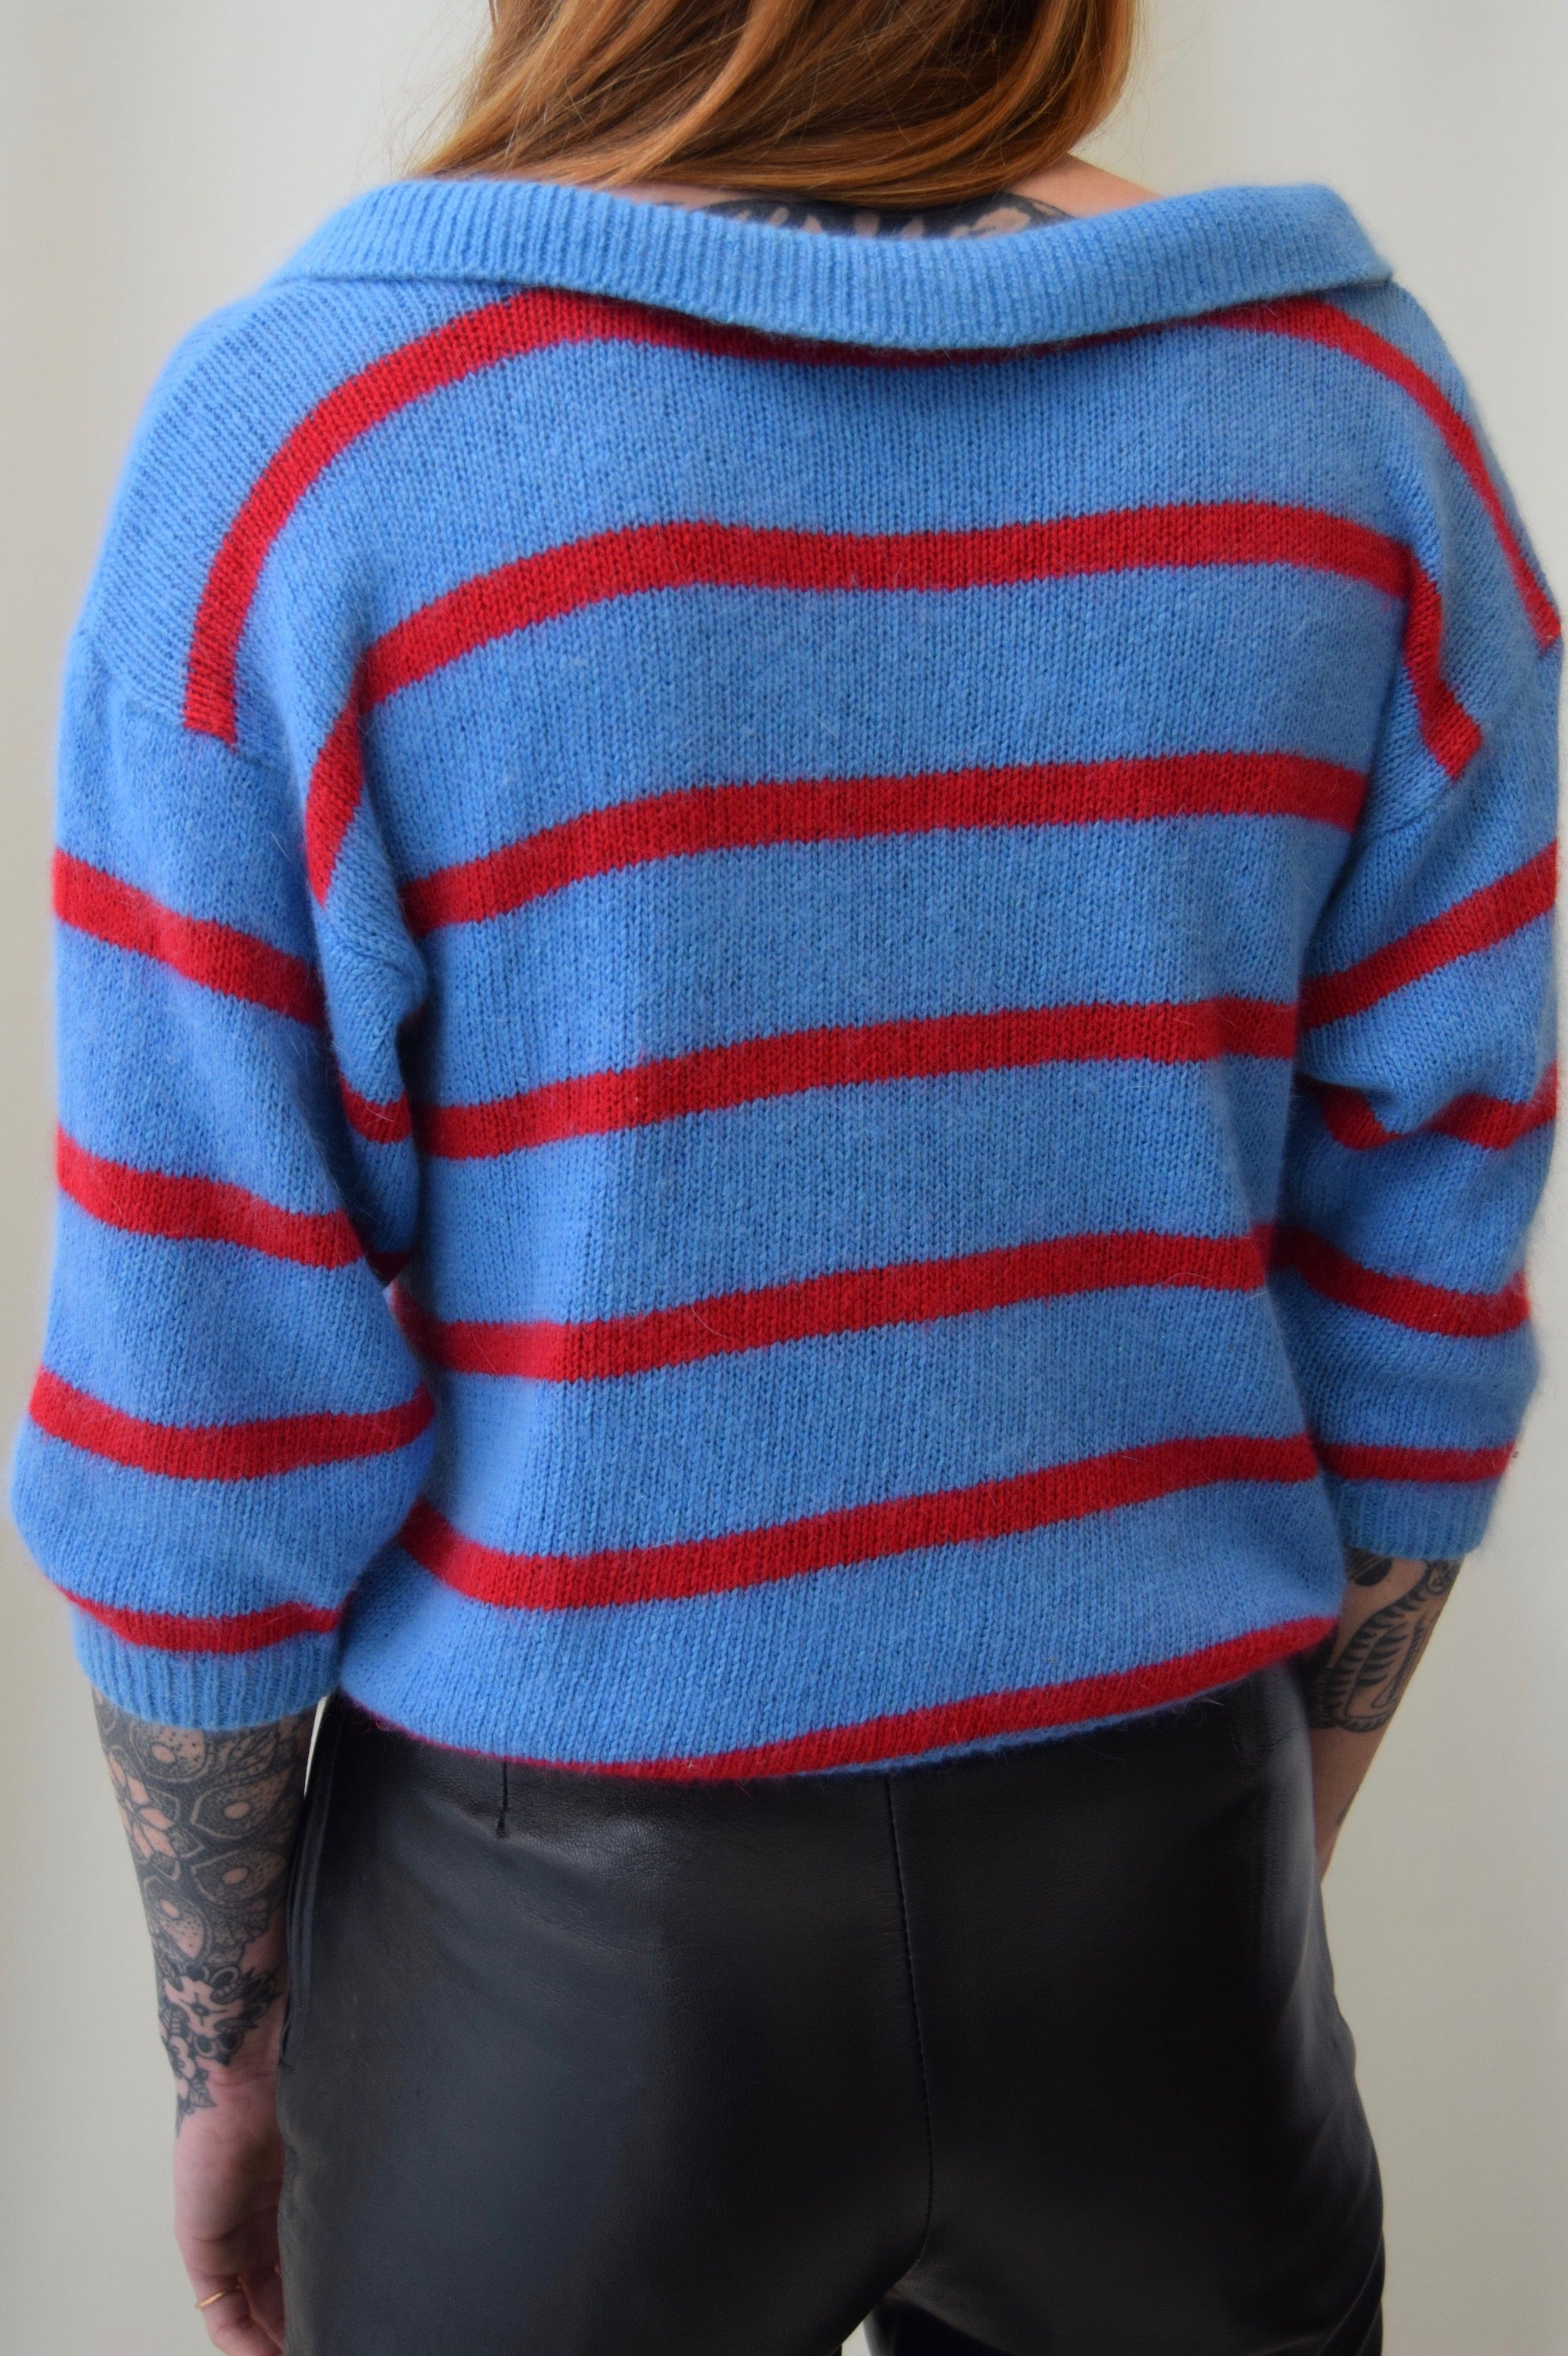 Blue and Red Pointed Collar Knit FREE SHIPPING TO THE U.S.